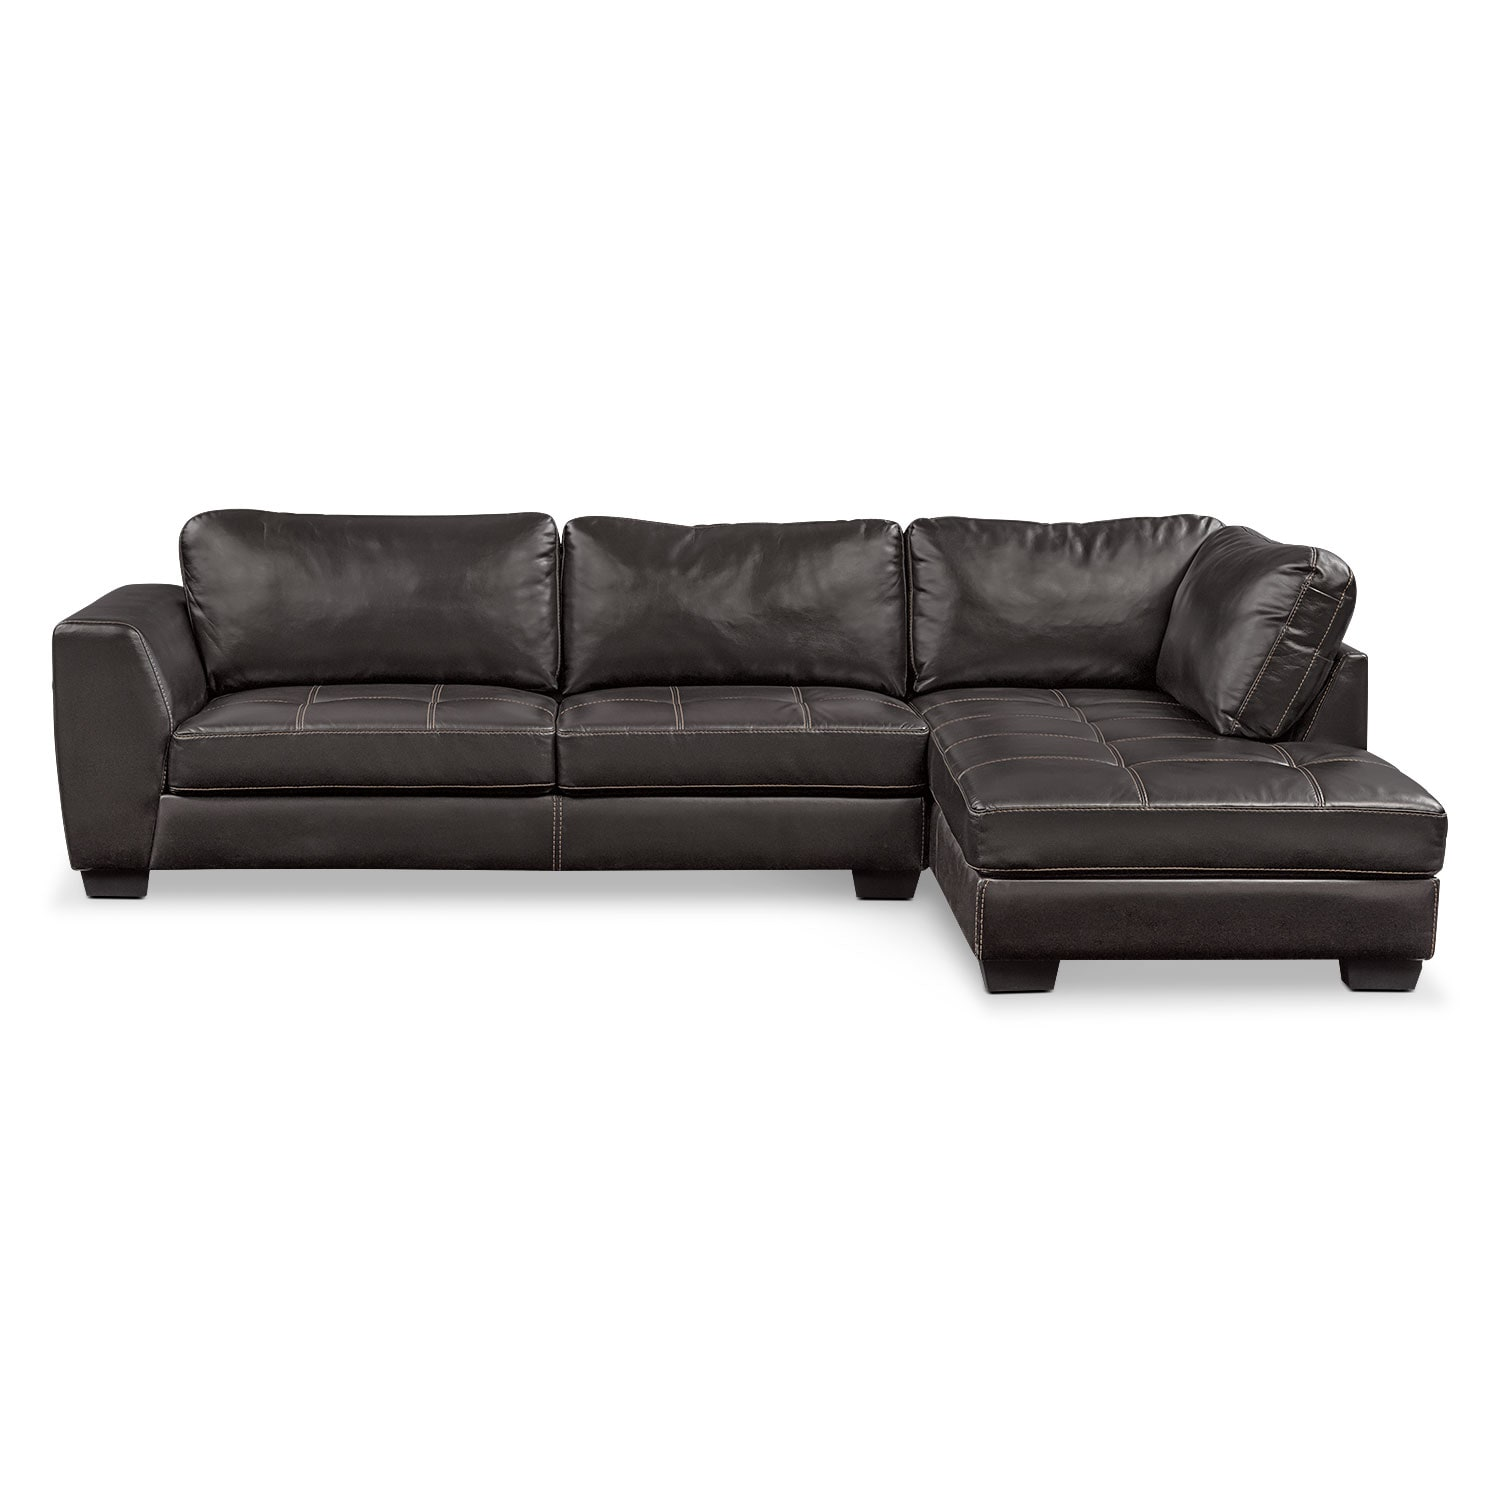 Living Room Furniture   Santana 2 Piece Sectional With Right Facing Chaise    Black